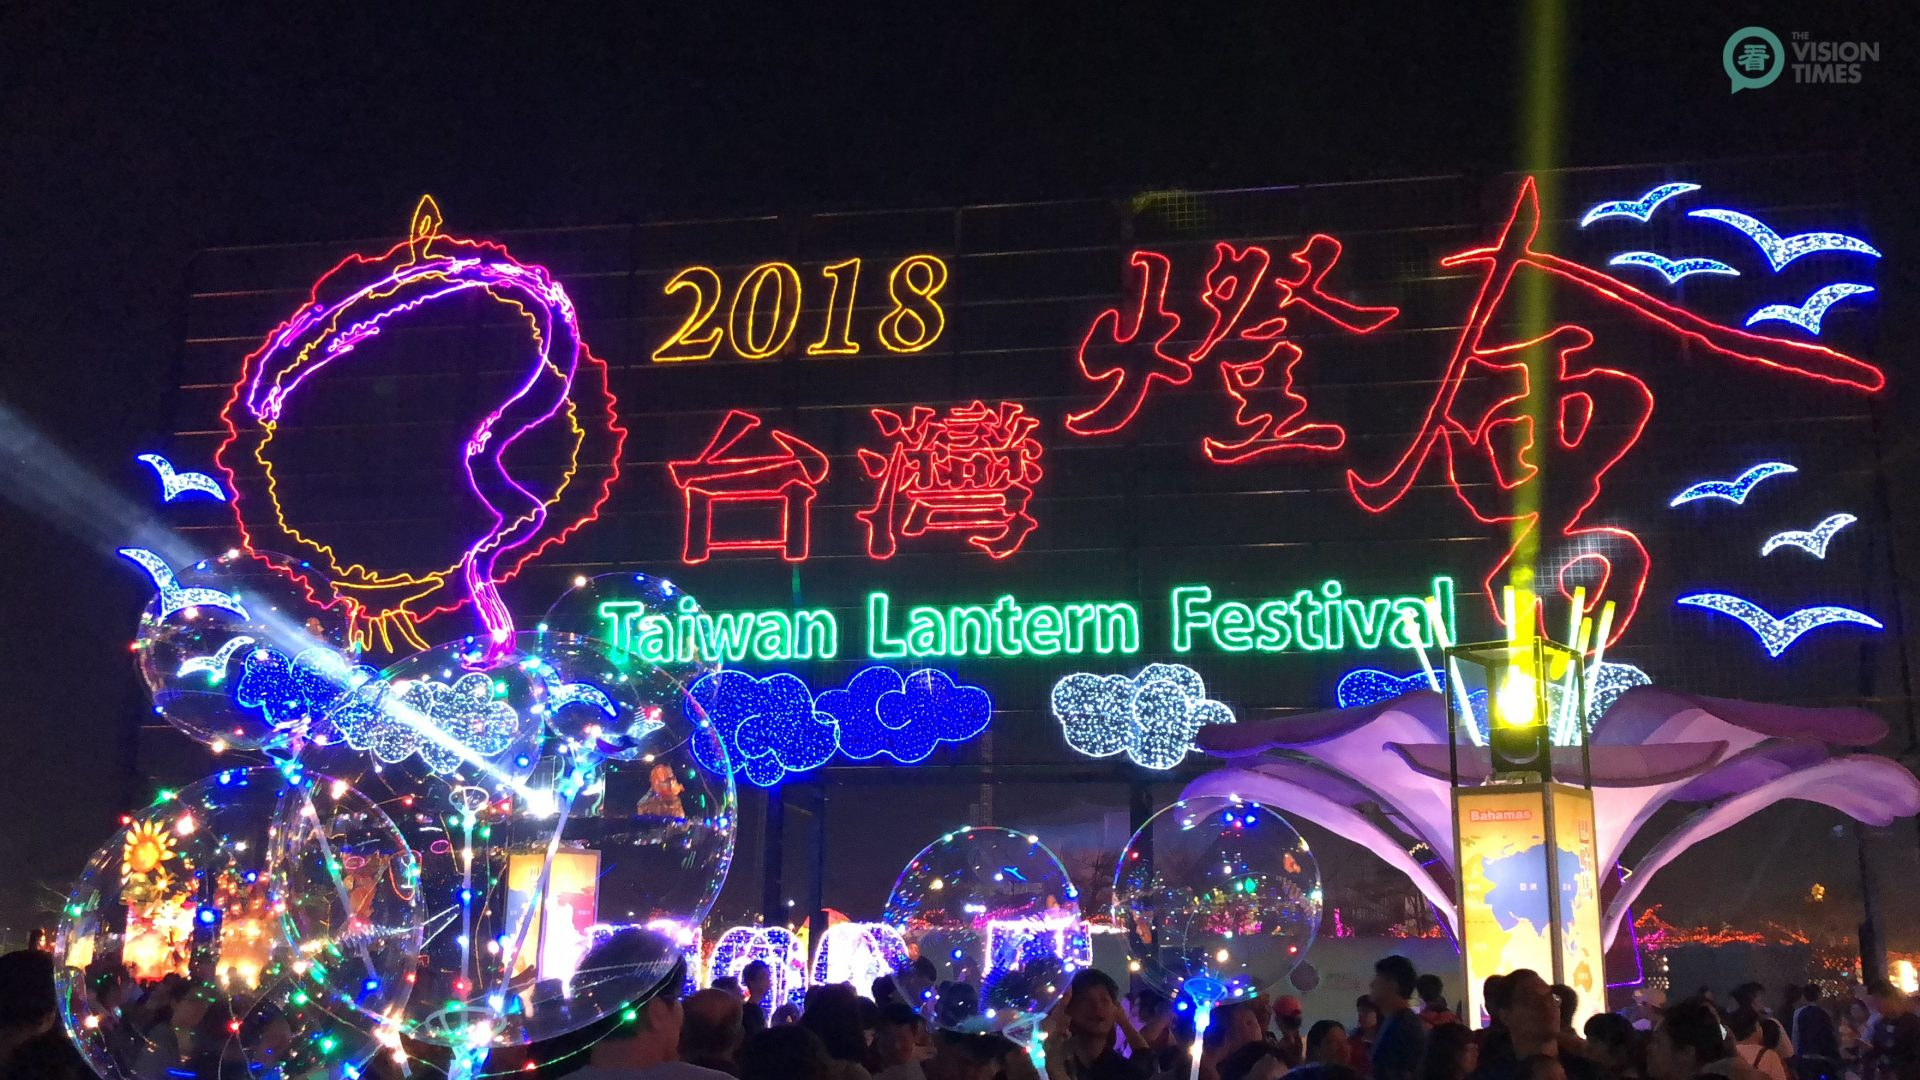 The 2018 Taiwan Lantern Festival aims to bring together tourism, technology, culture and art to showcase Chiayi County's renewed traditions and creativity. (Image: Billy Shyu / Vision Times)